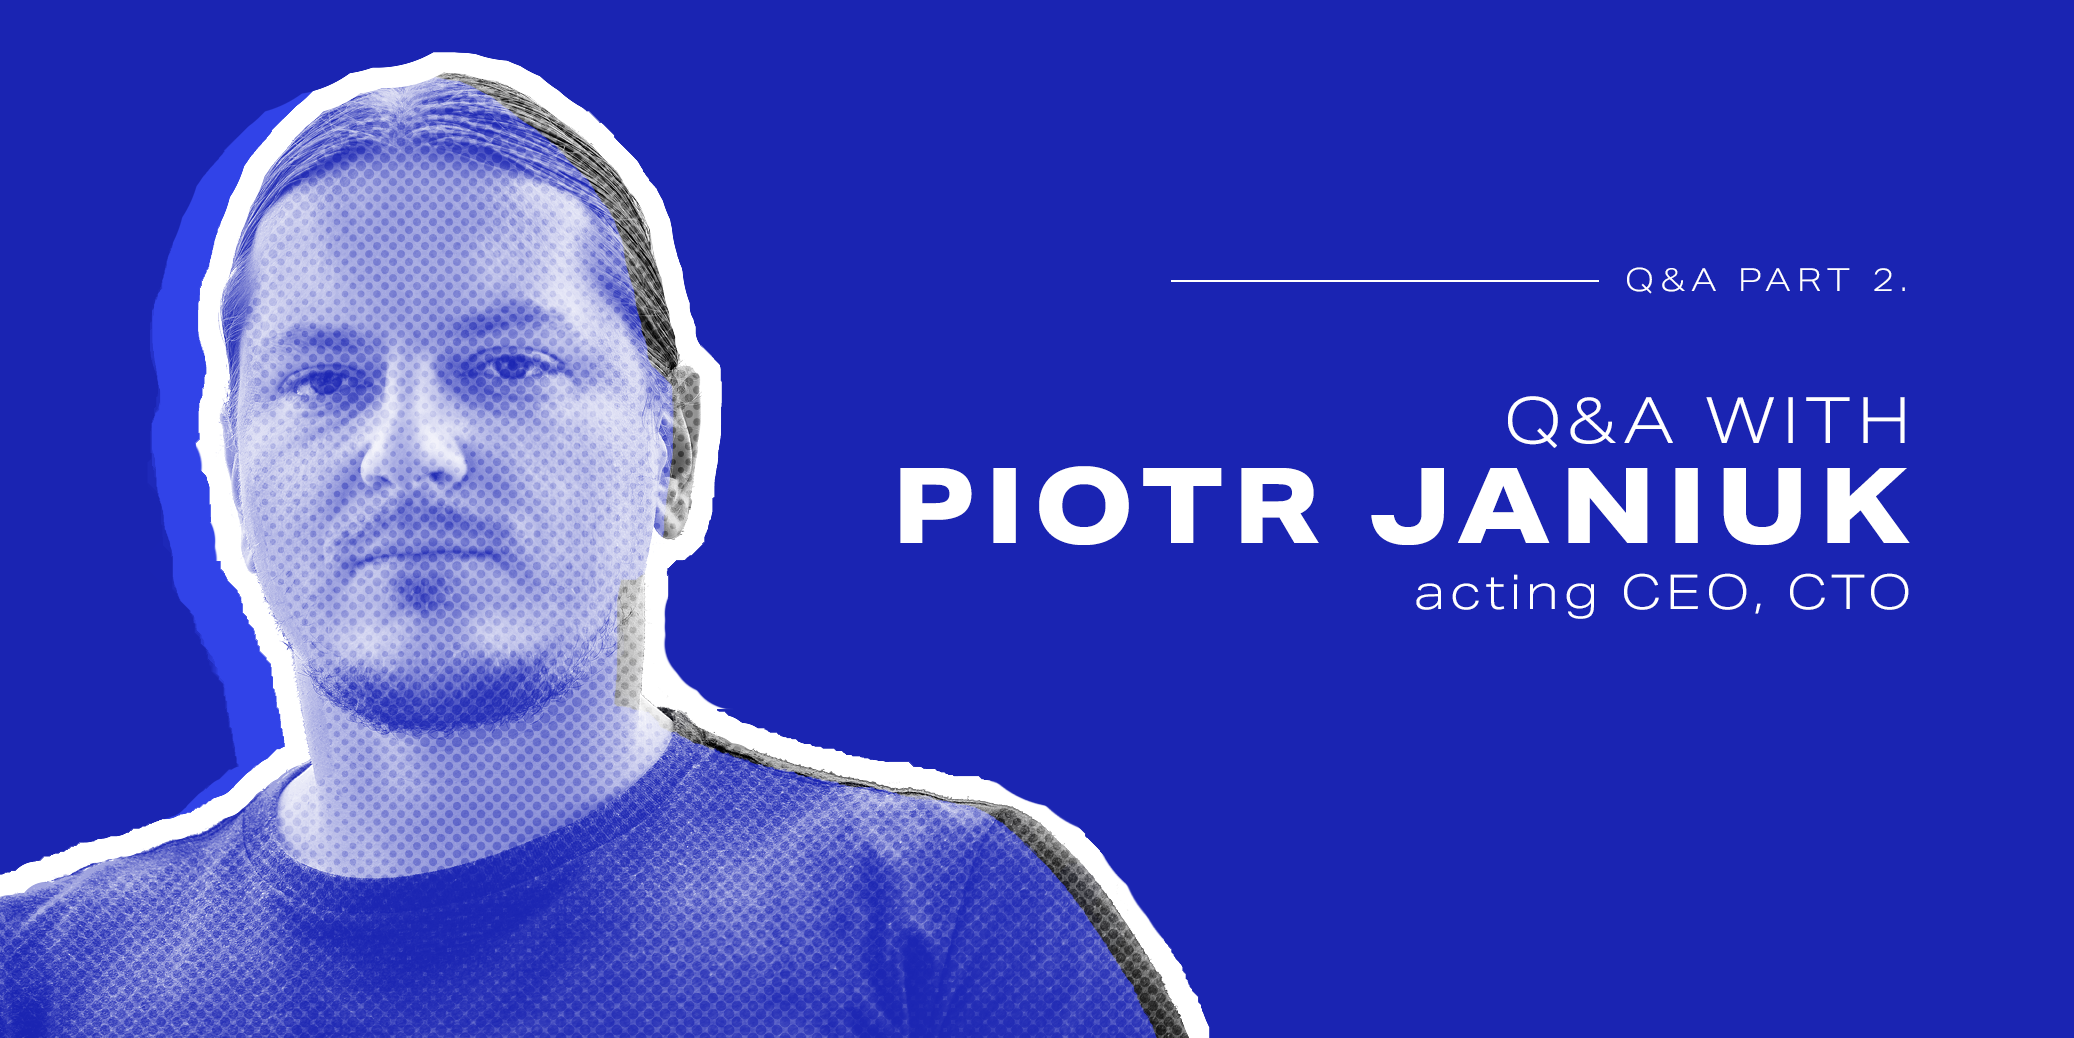 Q&A With Piotr Janiuk: Part II - Intel SGX, GNT and more